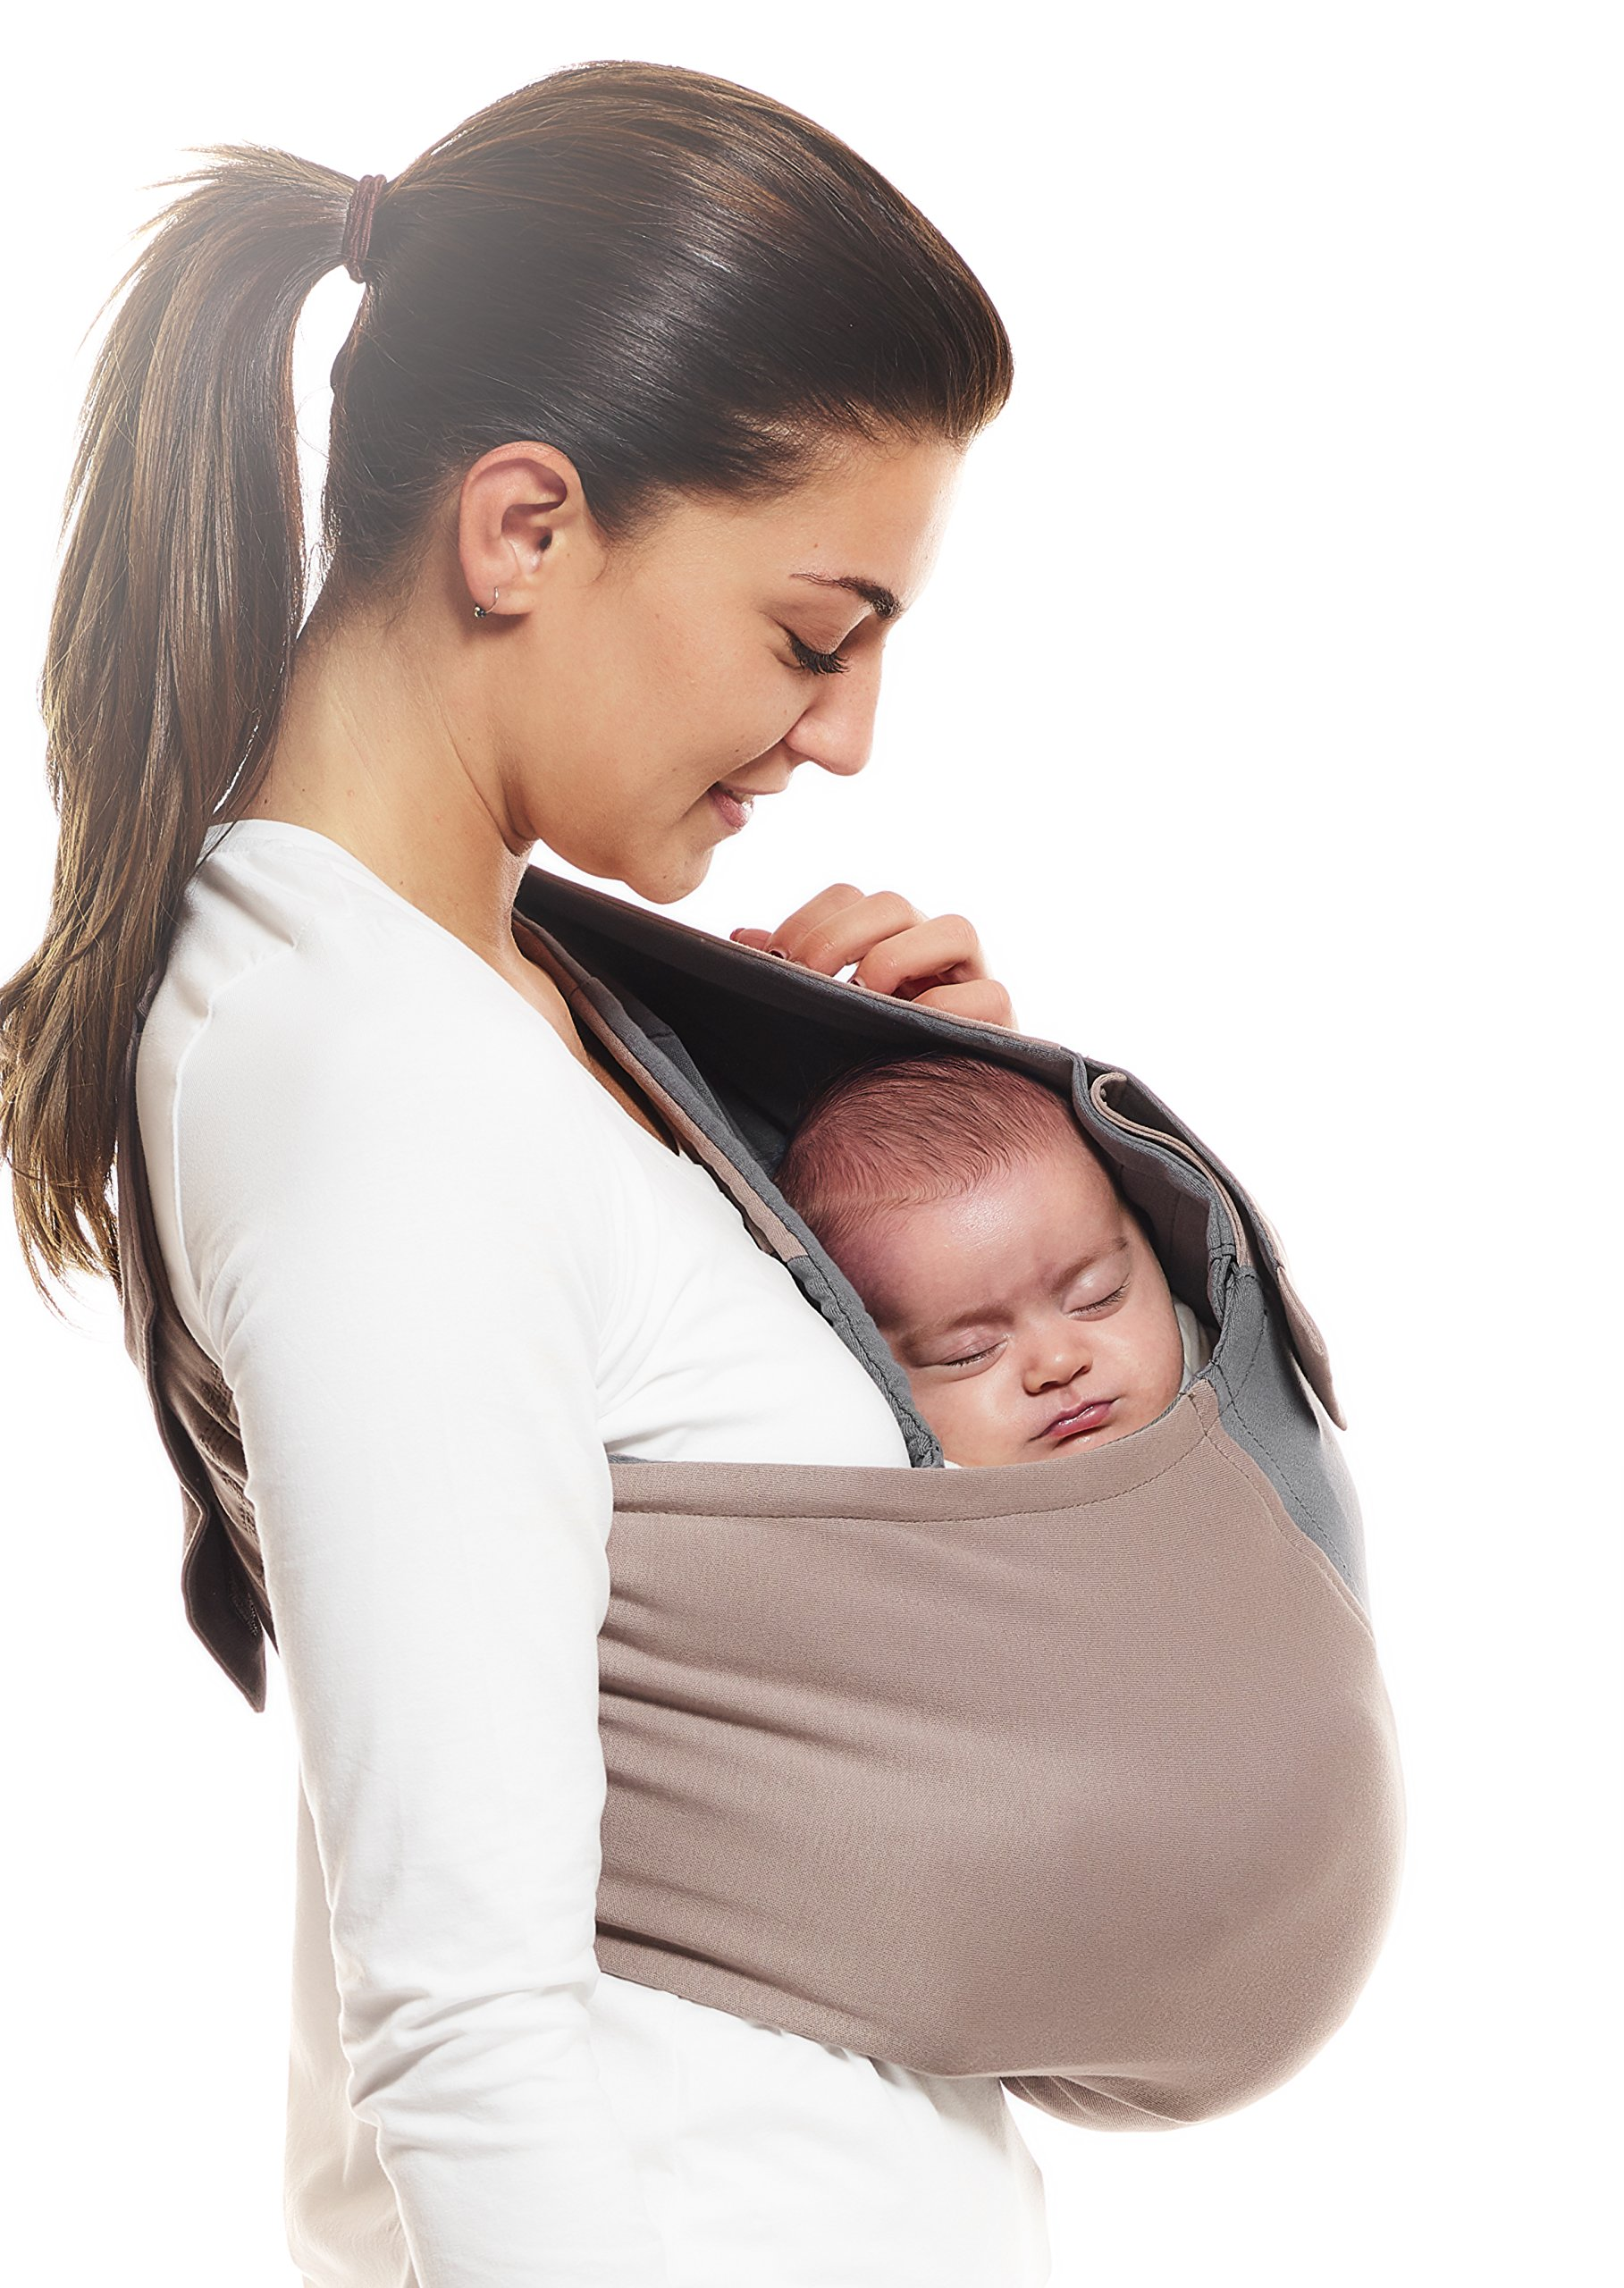 Wallaboo Wrap Sling Carrier Connection, Easy Adjustable, Ergonomic, 3 Carrying Positions, Newborn 8lbs to 33 lbs, Soft Breathable Cotton, 3 Sitting Positions, EU Safety Tested, Color: Taupe / Grey Wallaboo Ergonomically correct design with three natural positions: sleep, sit and active- one size fits all Can be used from premature baby through to 33lbs - with easy-to-use features like a full-front opening and an adjustable back Single piece of fabric, no straps, belts or buckles - Partly padded to give extra comfort- No wrapping, no hardware. Ready to wear 5